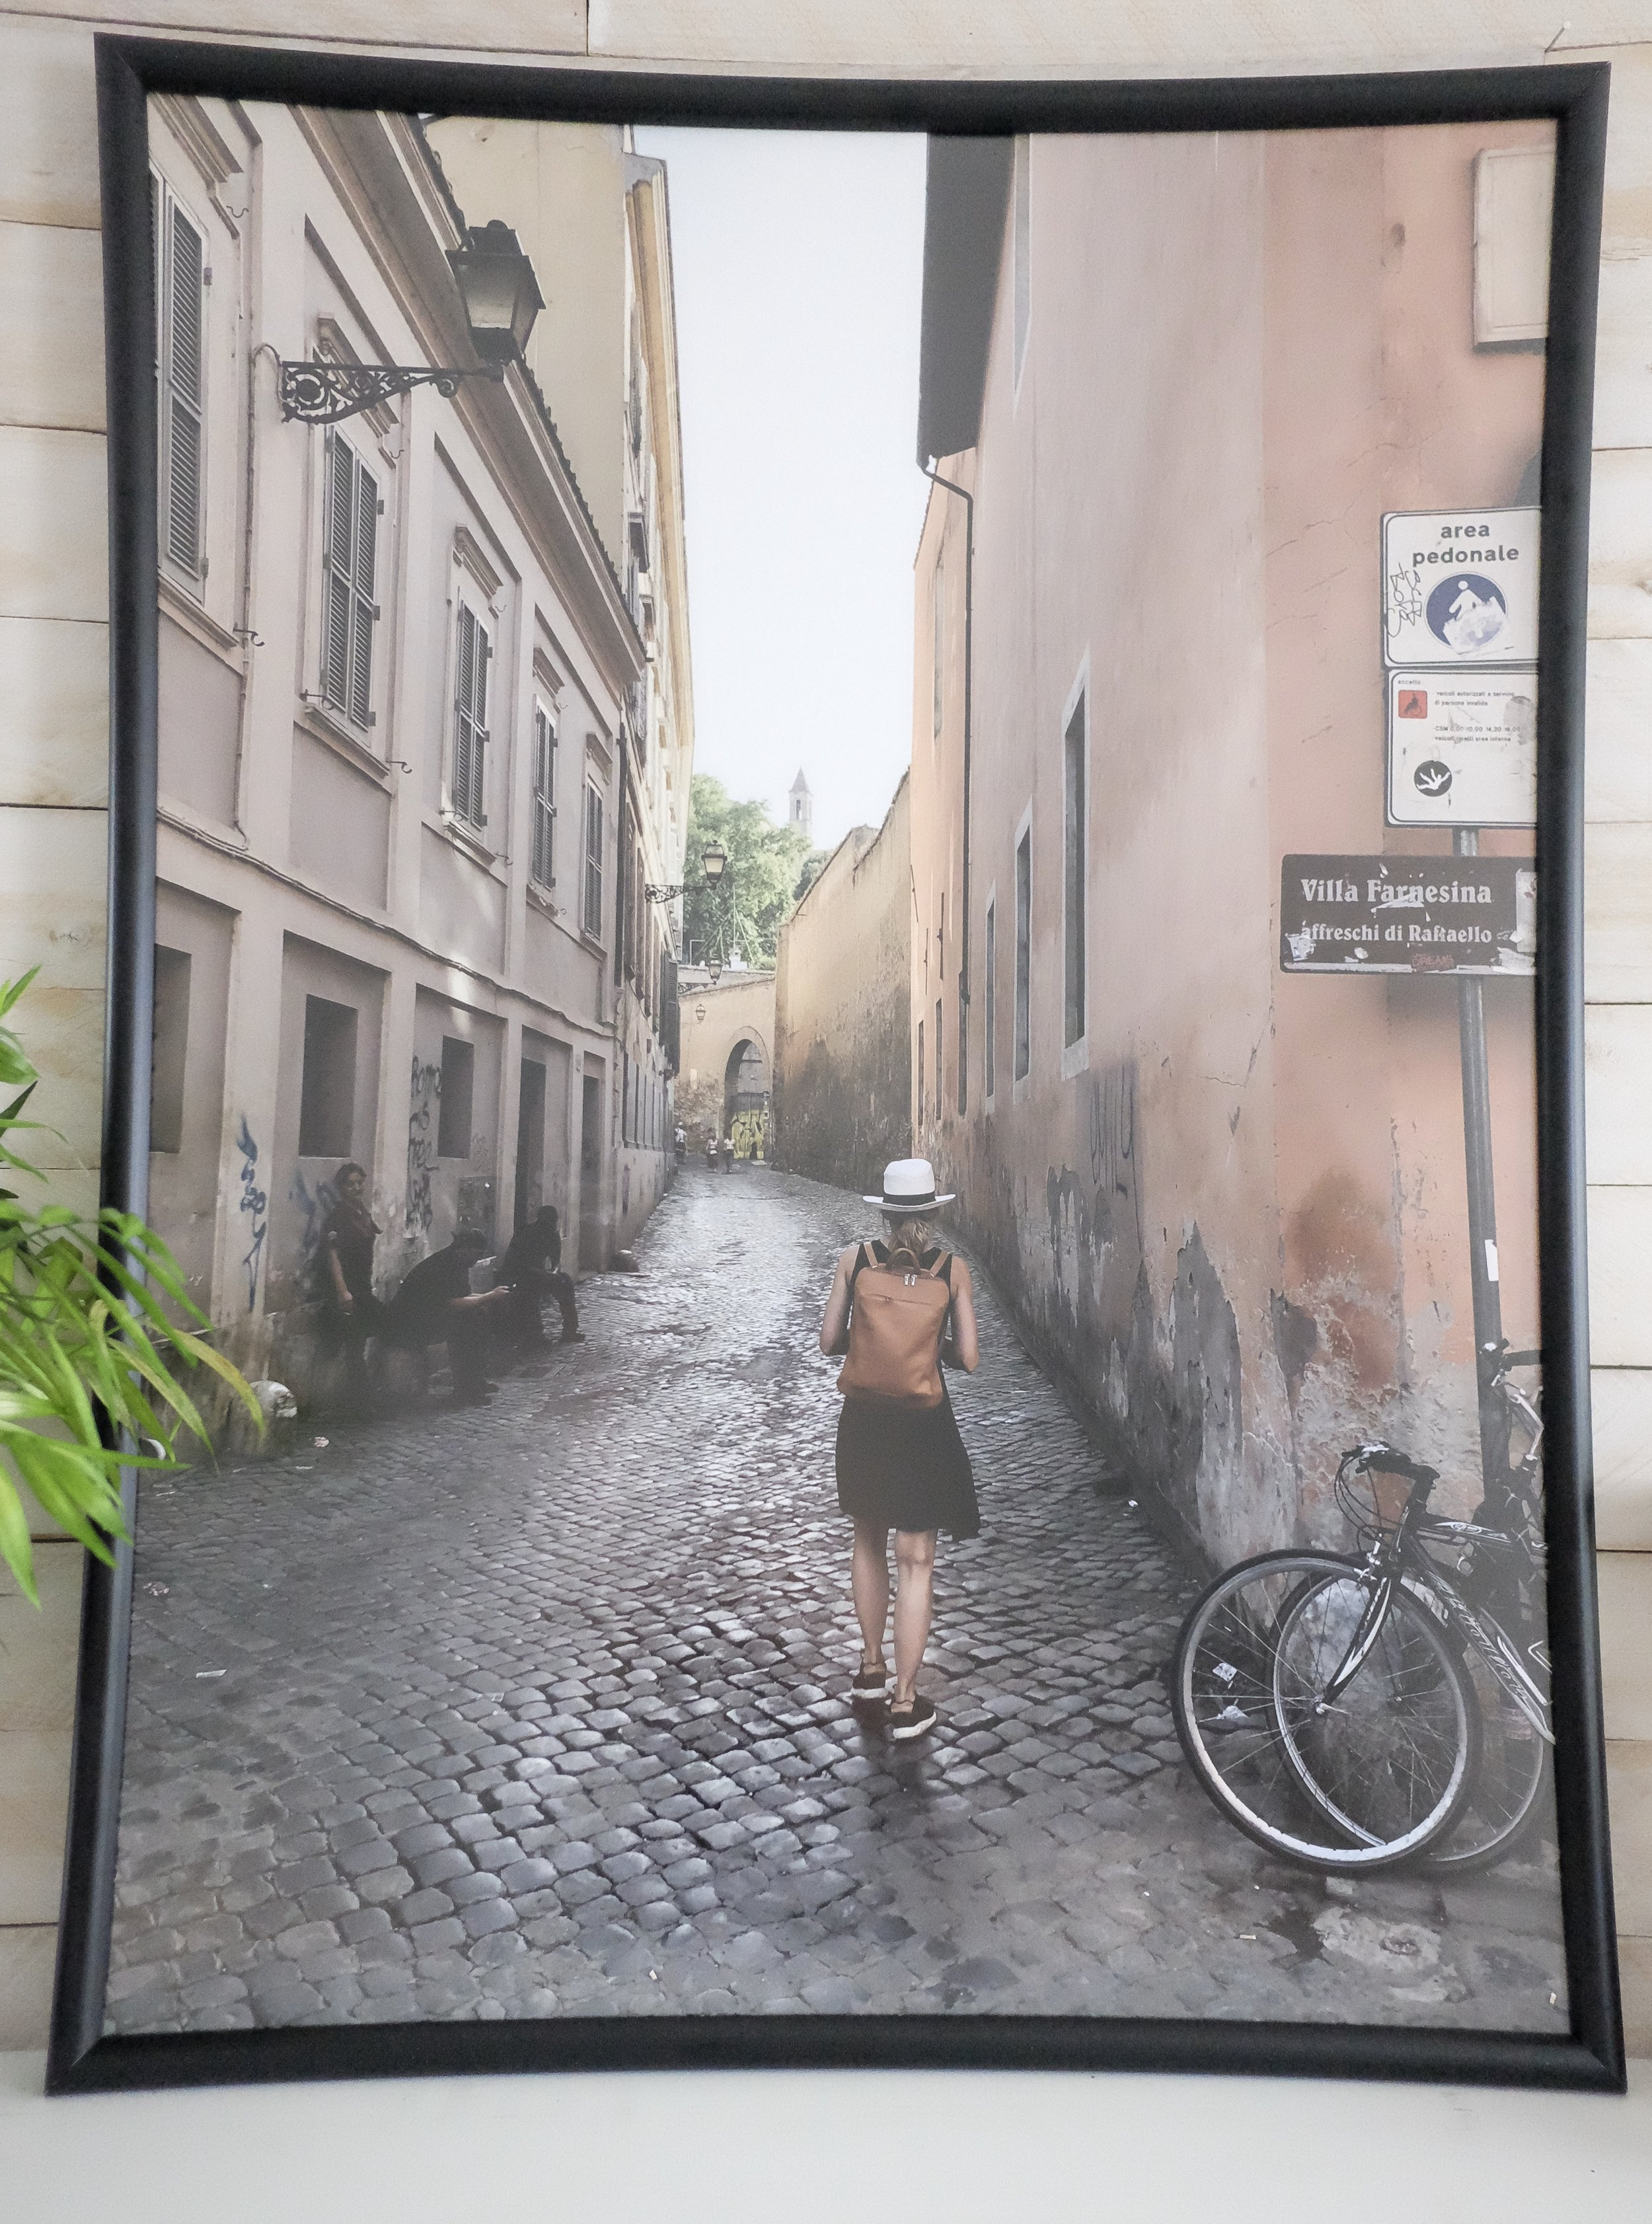 My husband snapped this picture on his iPhone as I was walking along one of the streets in Rome. He loves it so we had it blown up! We're putting it in his office but for now, it's gracing our Dining Room!